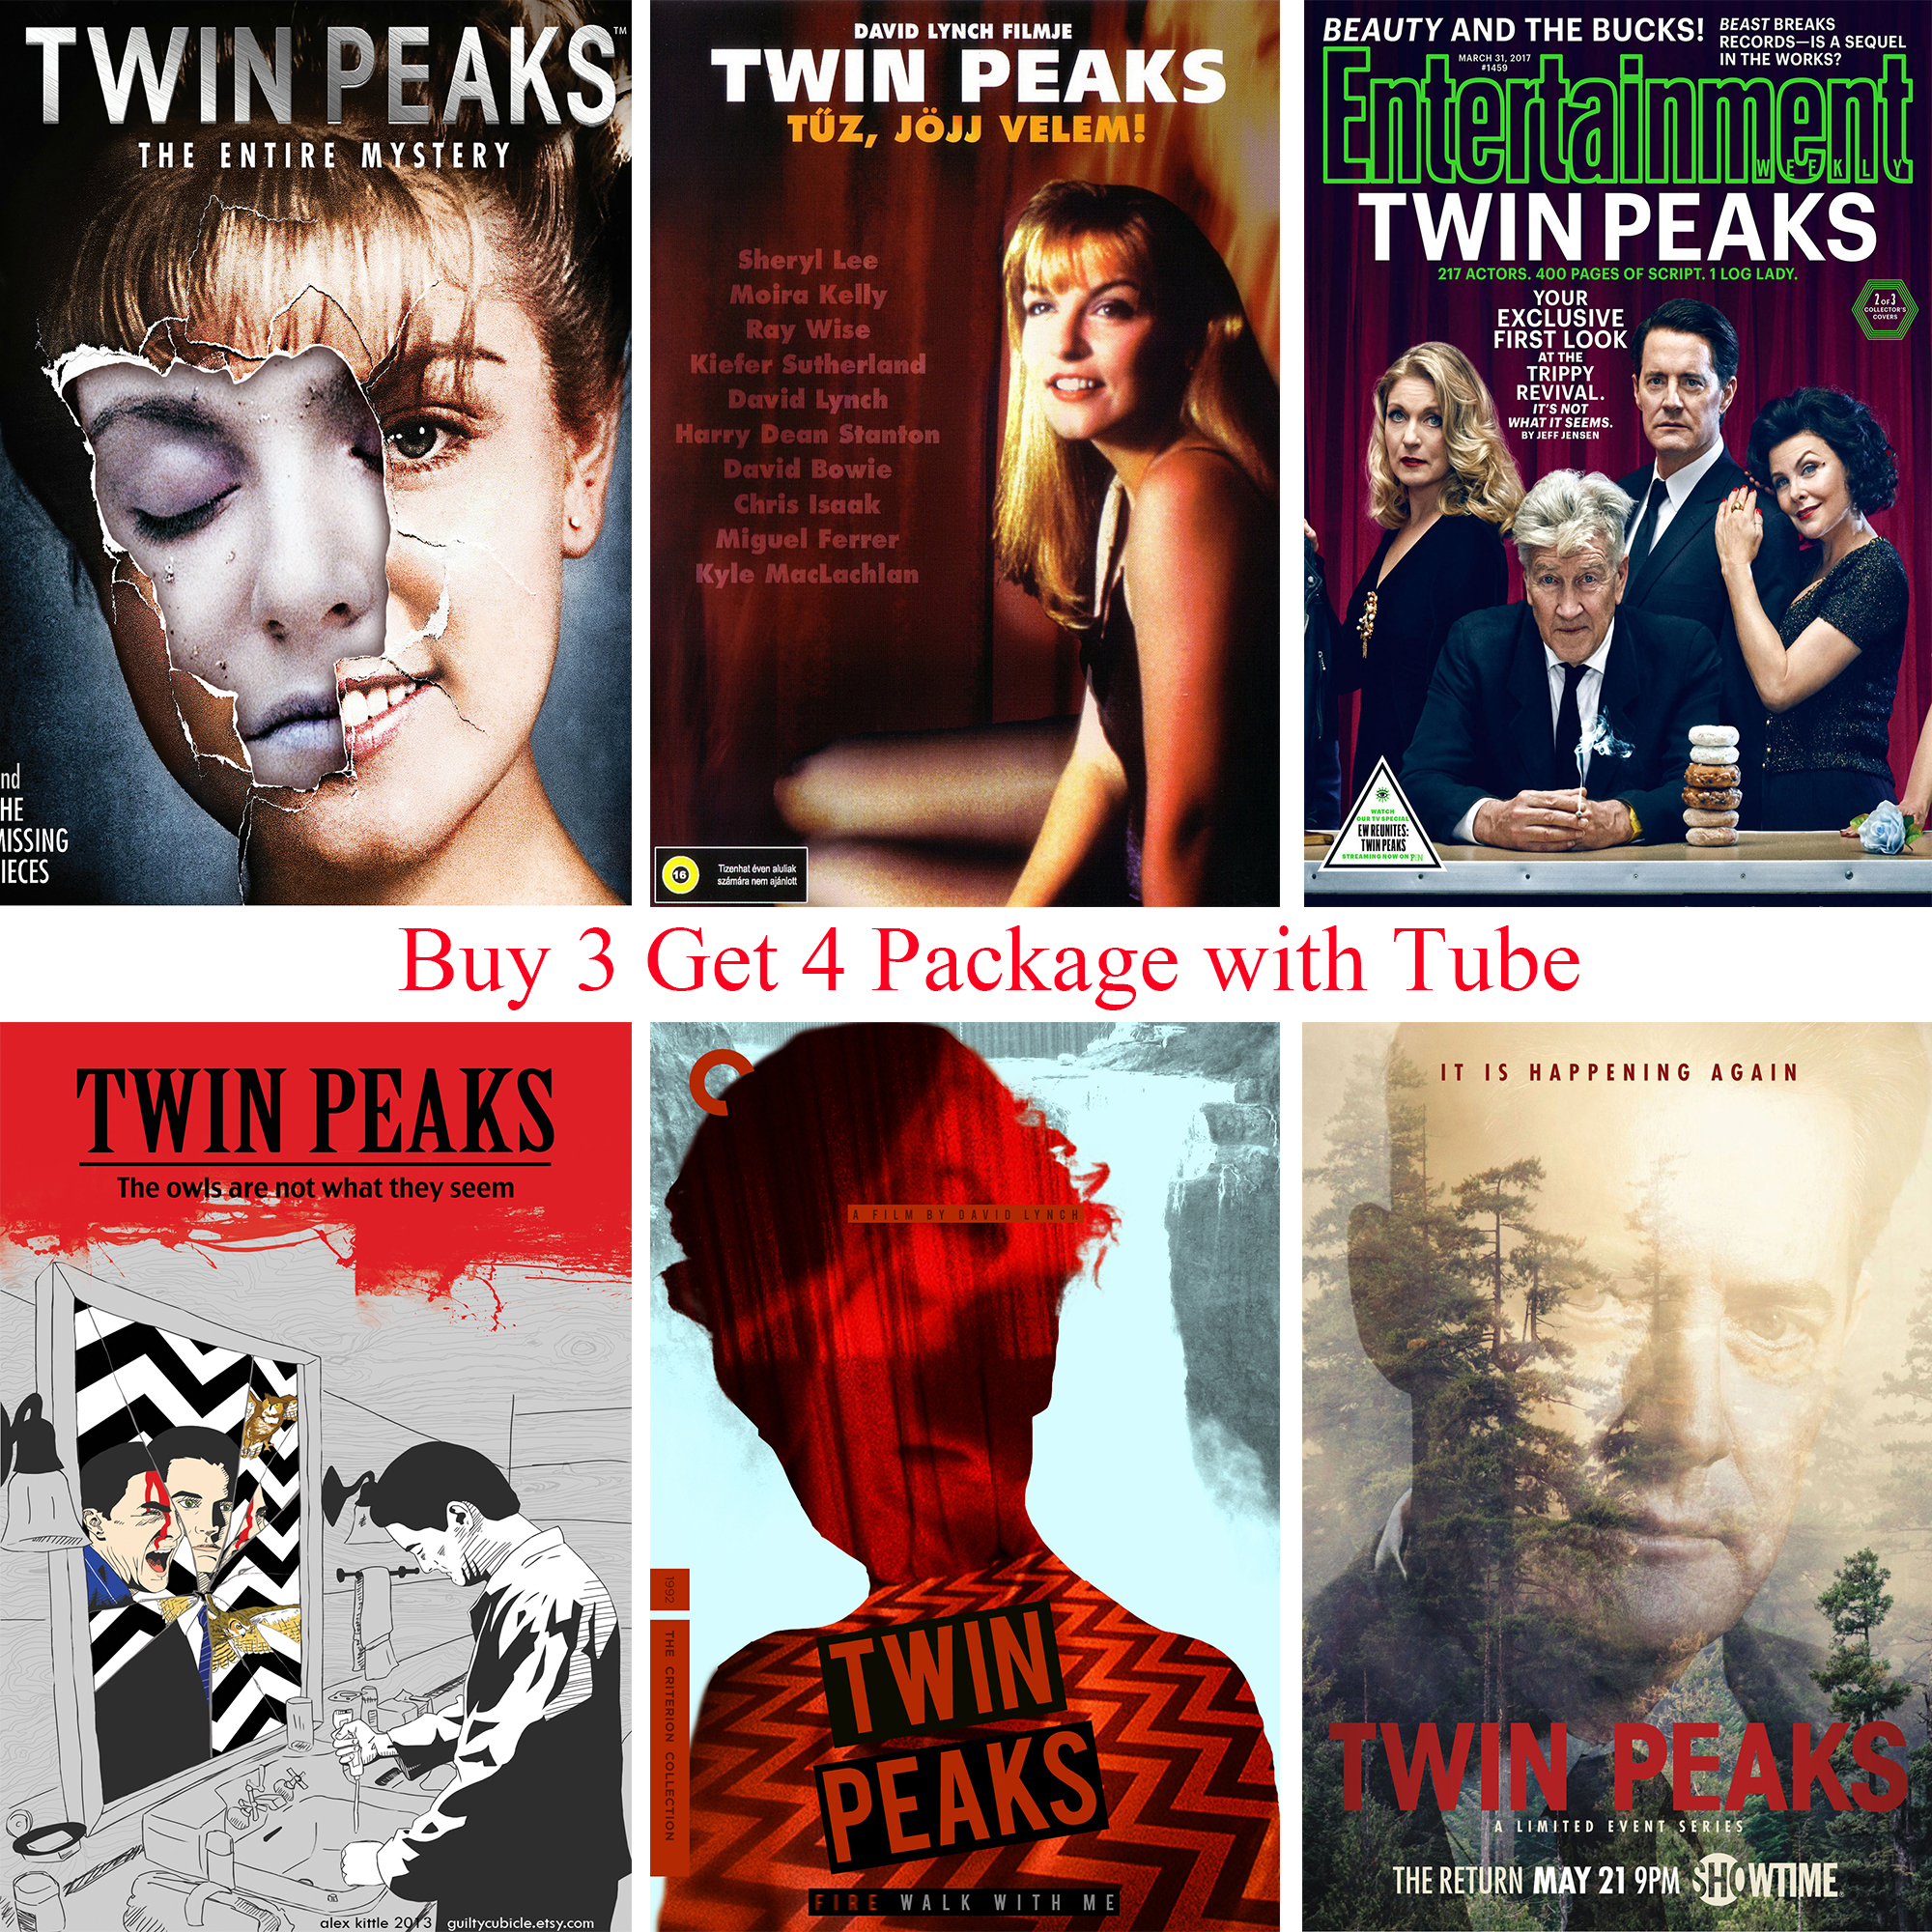 TWIN PEAKS Posters Movie Wall Stickers White Coated Paper Prints Clear Image Home Decoration for Livingroom Bedroom Bar ...